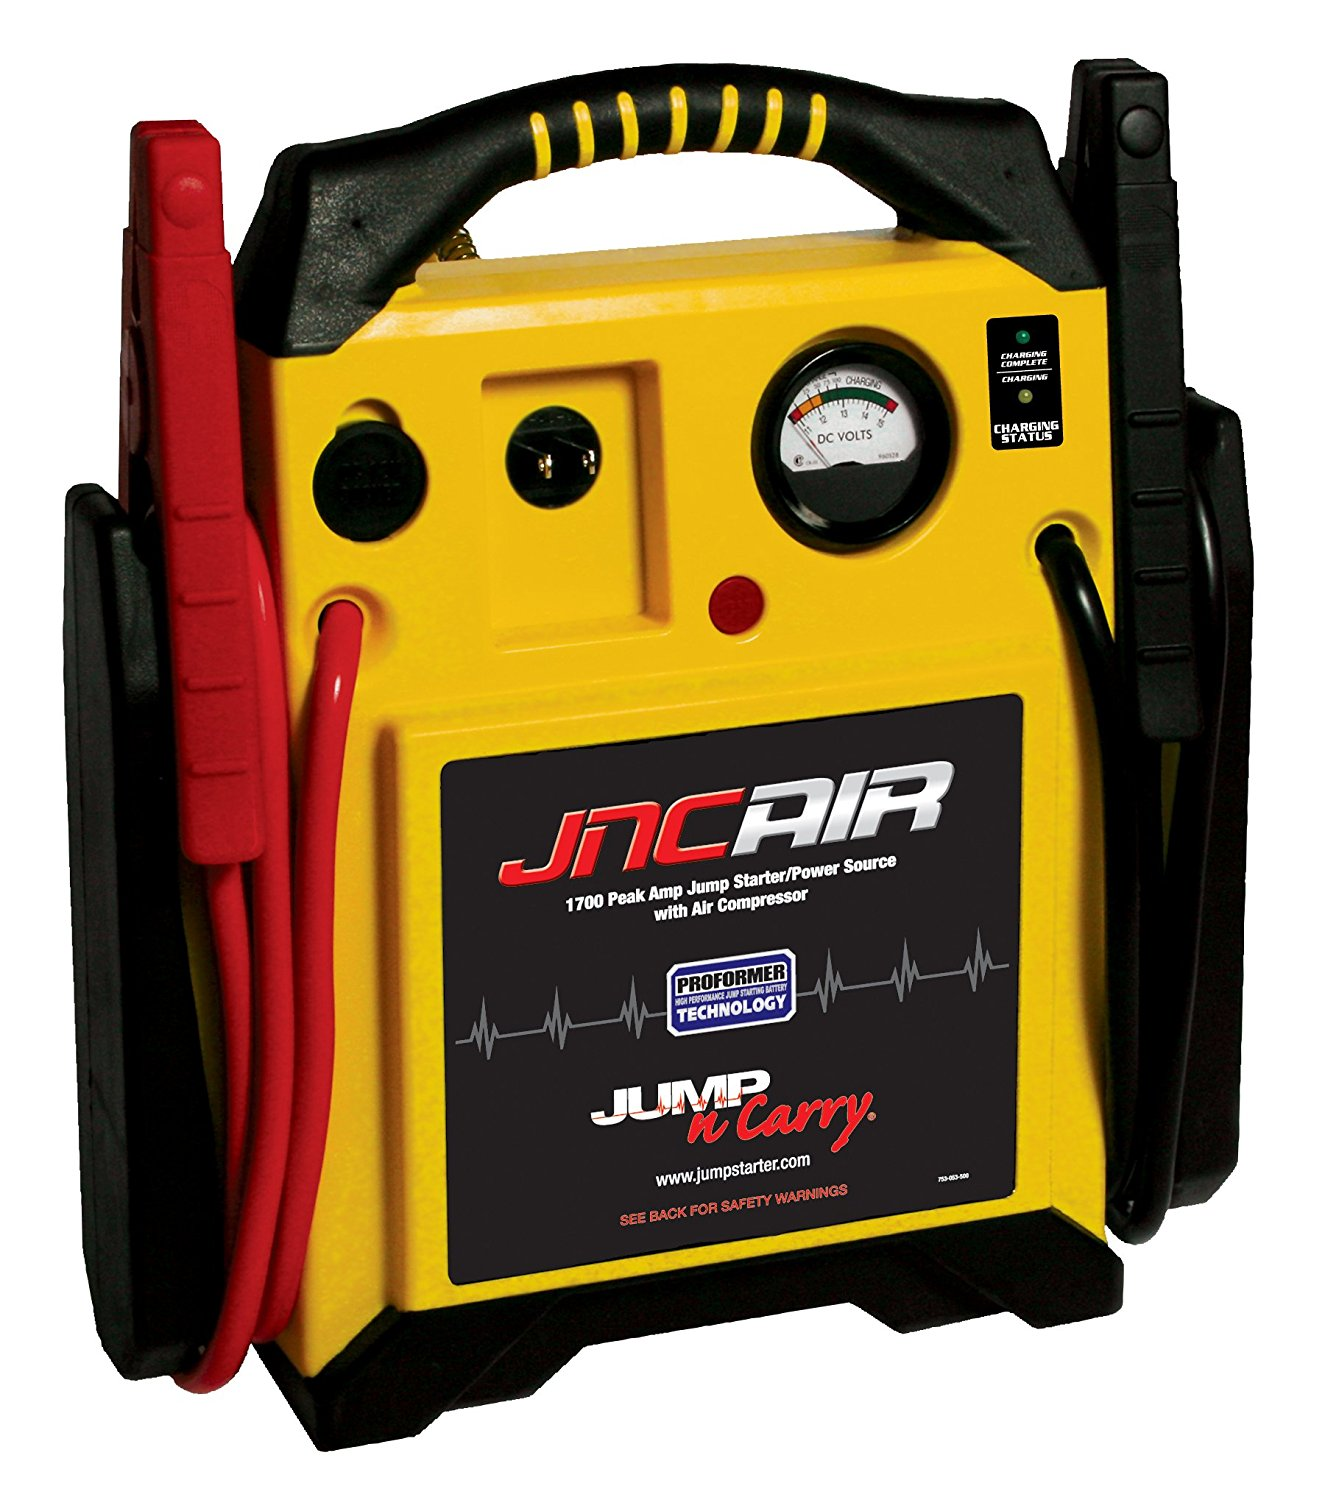 Jump-N-Carry JNCAIR with Power Source and Air Compressor